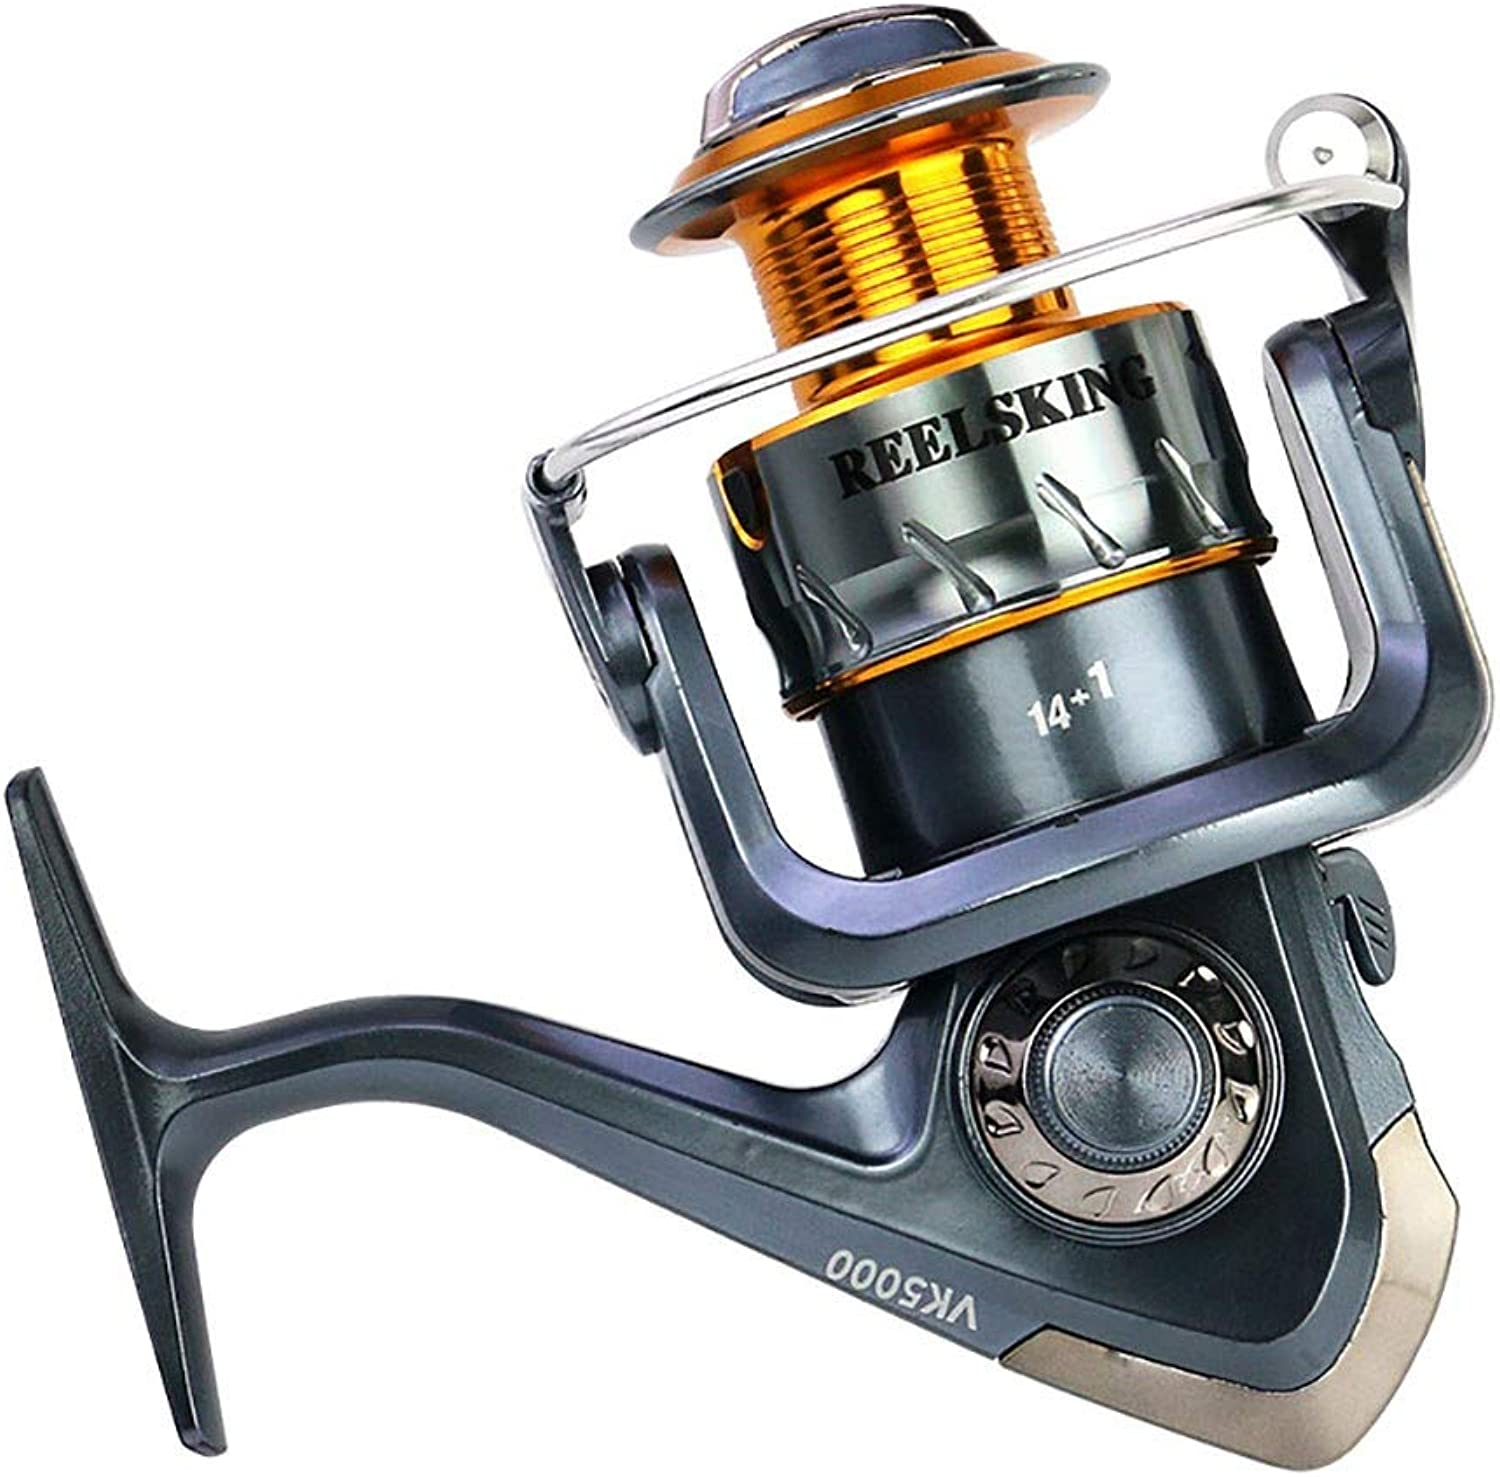 Metal Saltwater Baitcasting Reel,Speed Ratio 5.5 1 Aluminum Alloy Wire Cup Smooth Fishing Reels Left Right Interchangeable Rocker Arm Saltwater Light and Smooth Spinning Reels